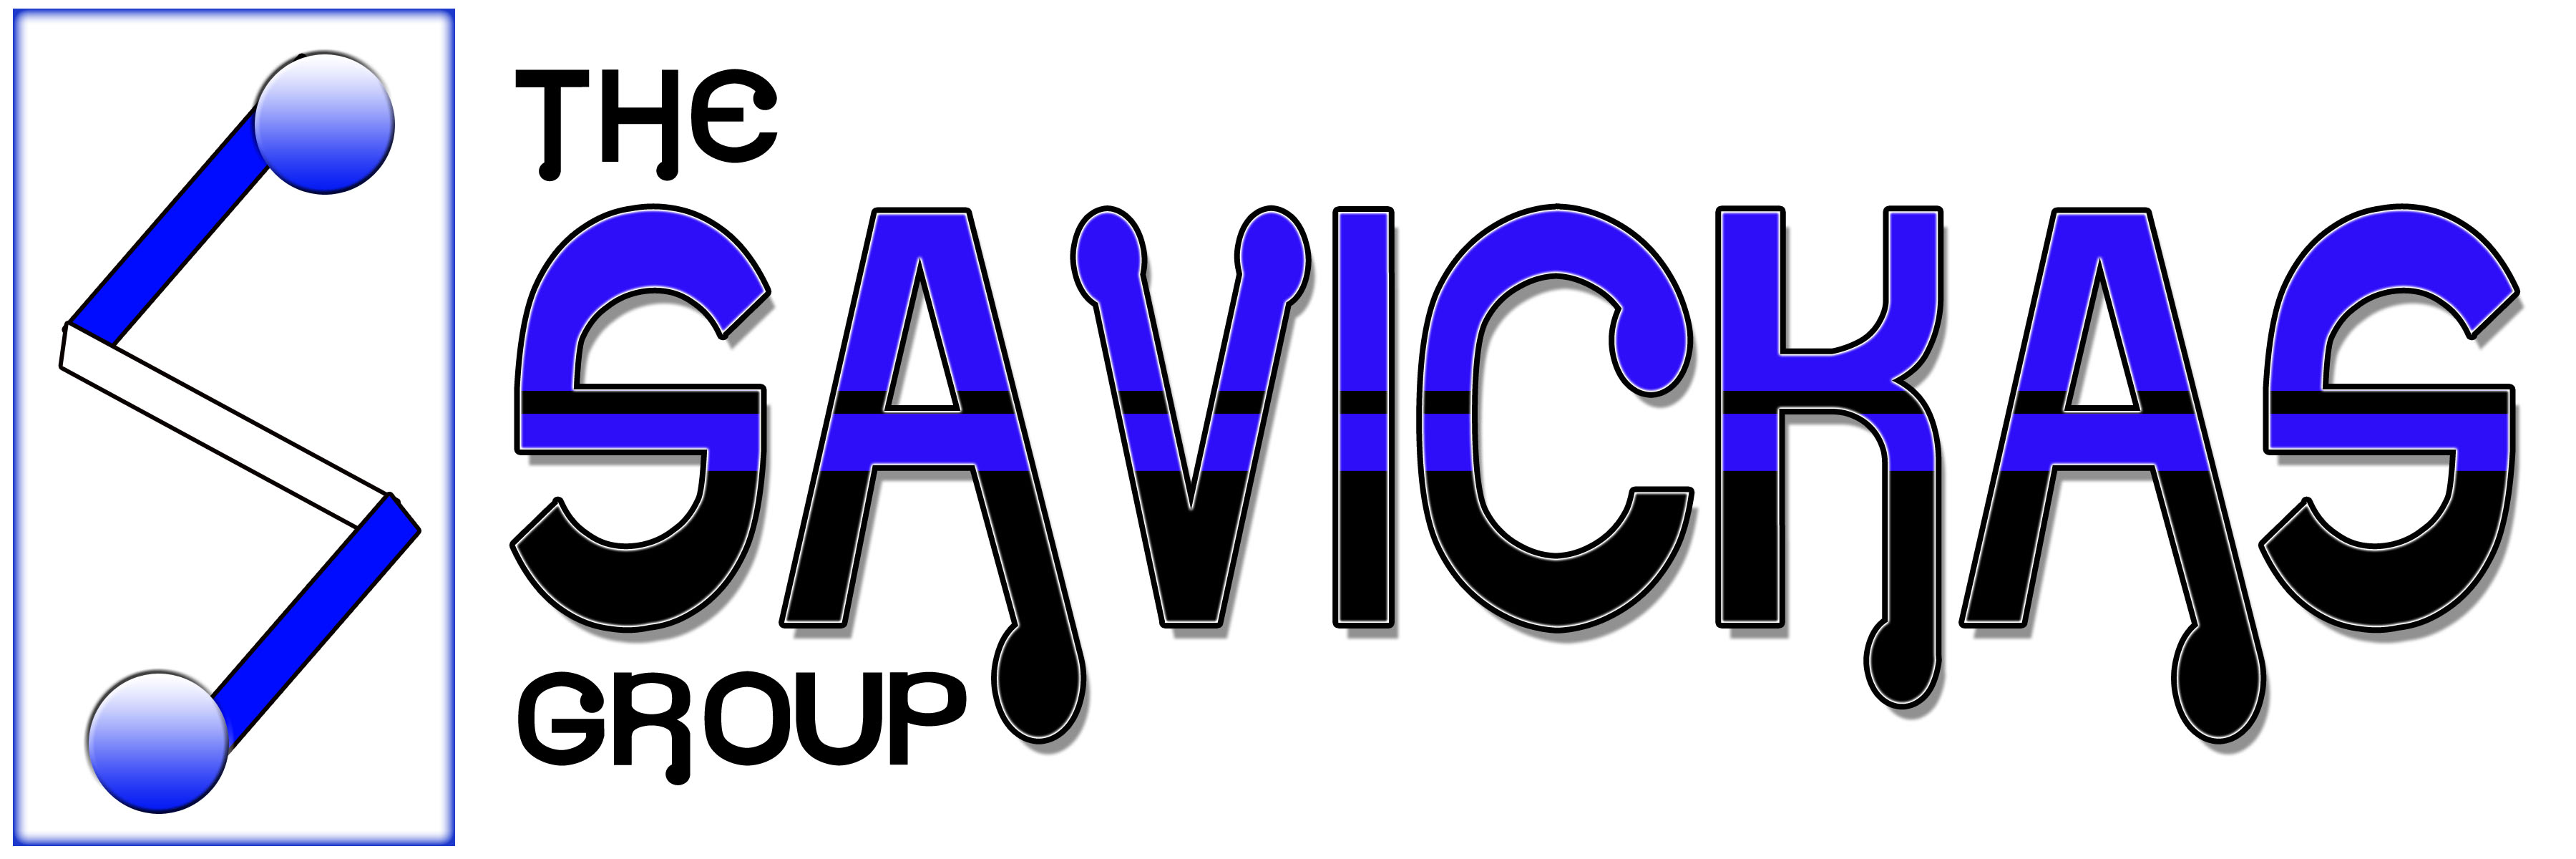 Logo Design by Davy Jones Estrellanes - Entry No. 68 in the Logo Design Contest Logo Design Needed for Exciting New Company The Savickas Group.